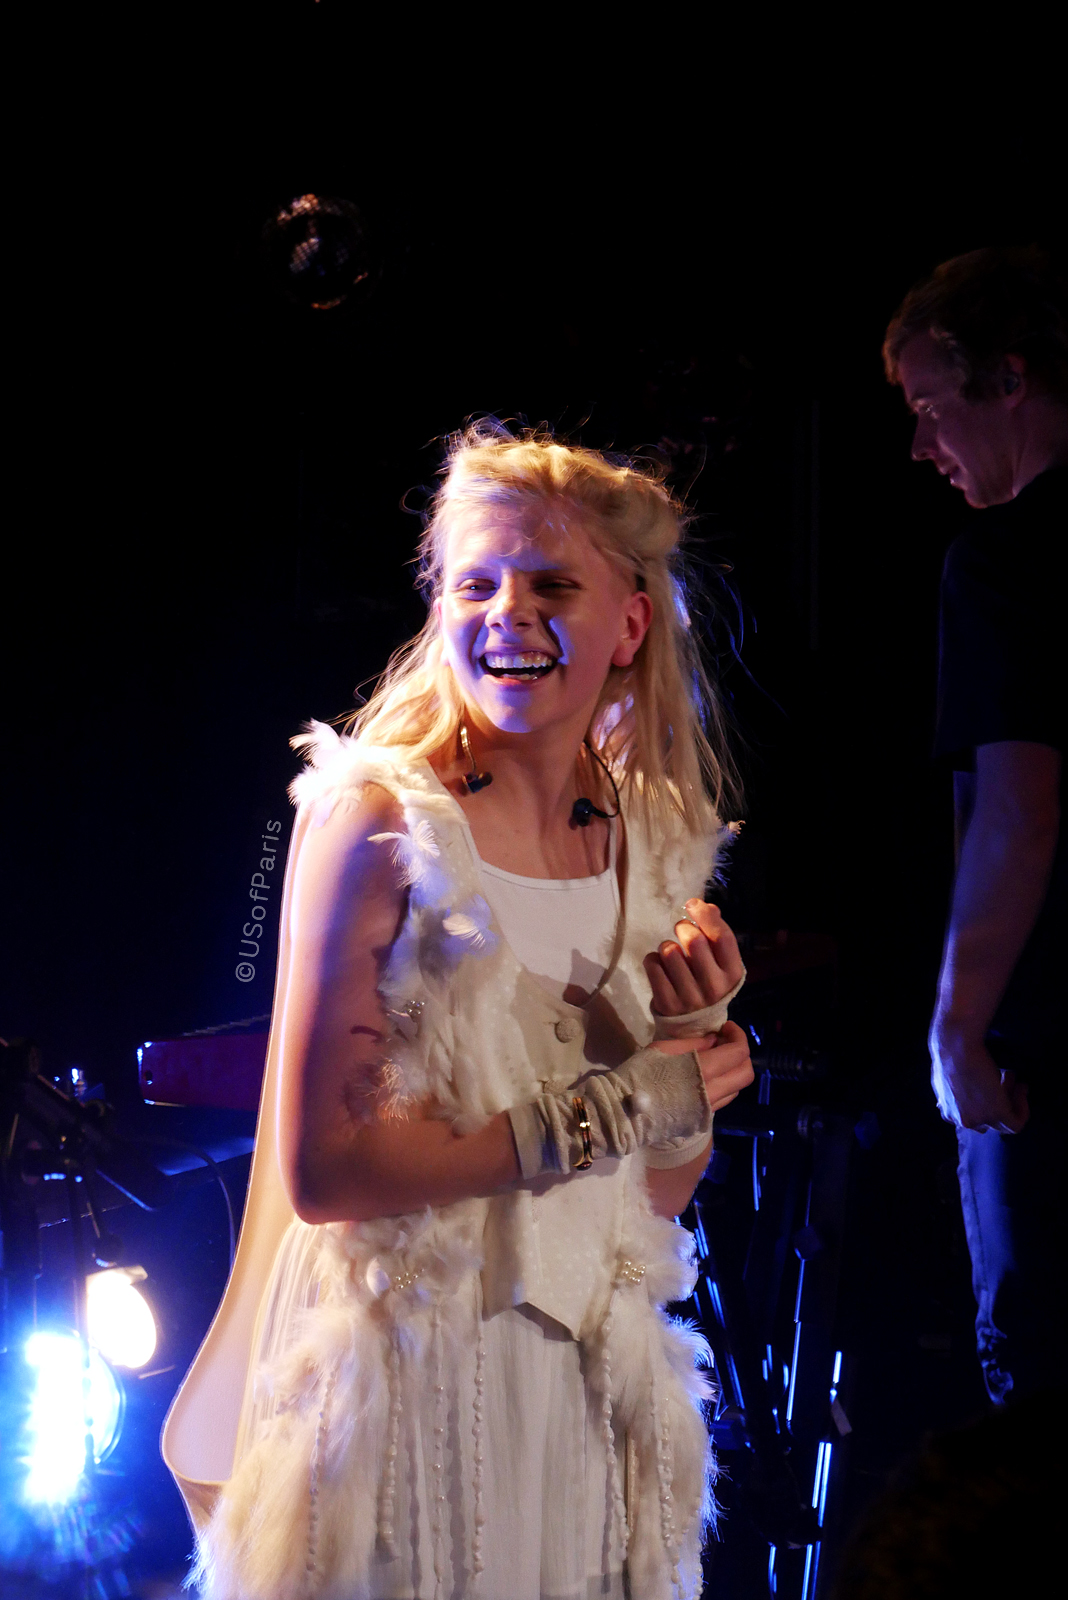 aurora-music-smile-live-concert-paris-la-maroquinerie-france-stage-photo-usofparis-blog